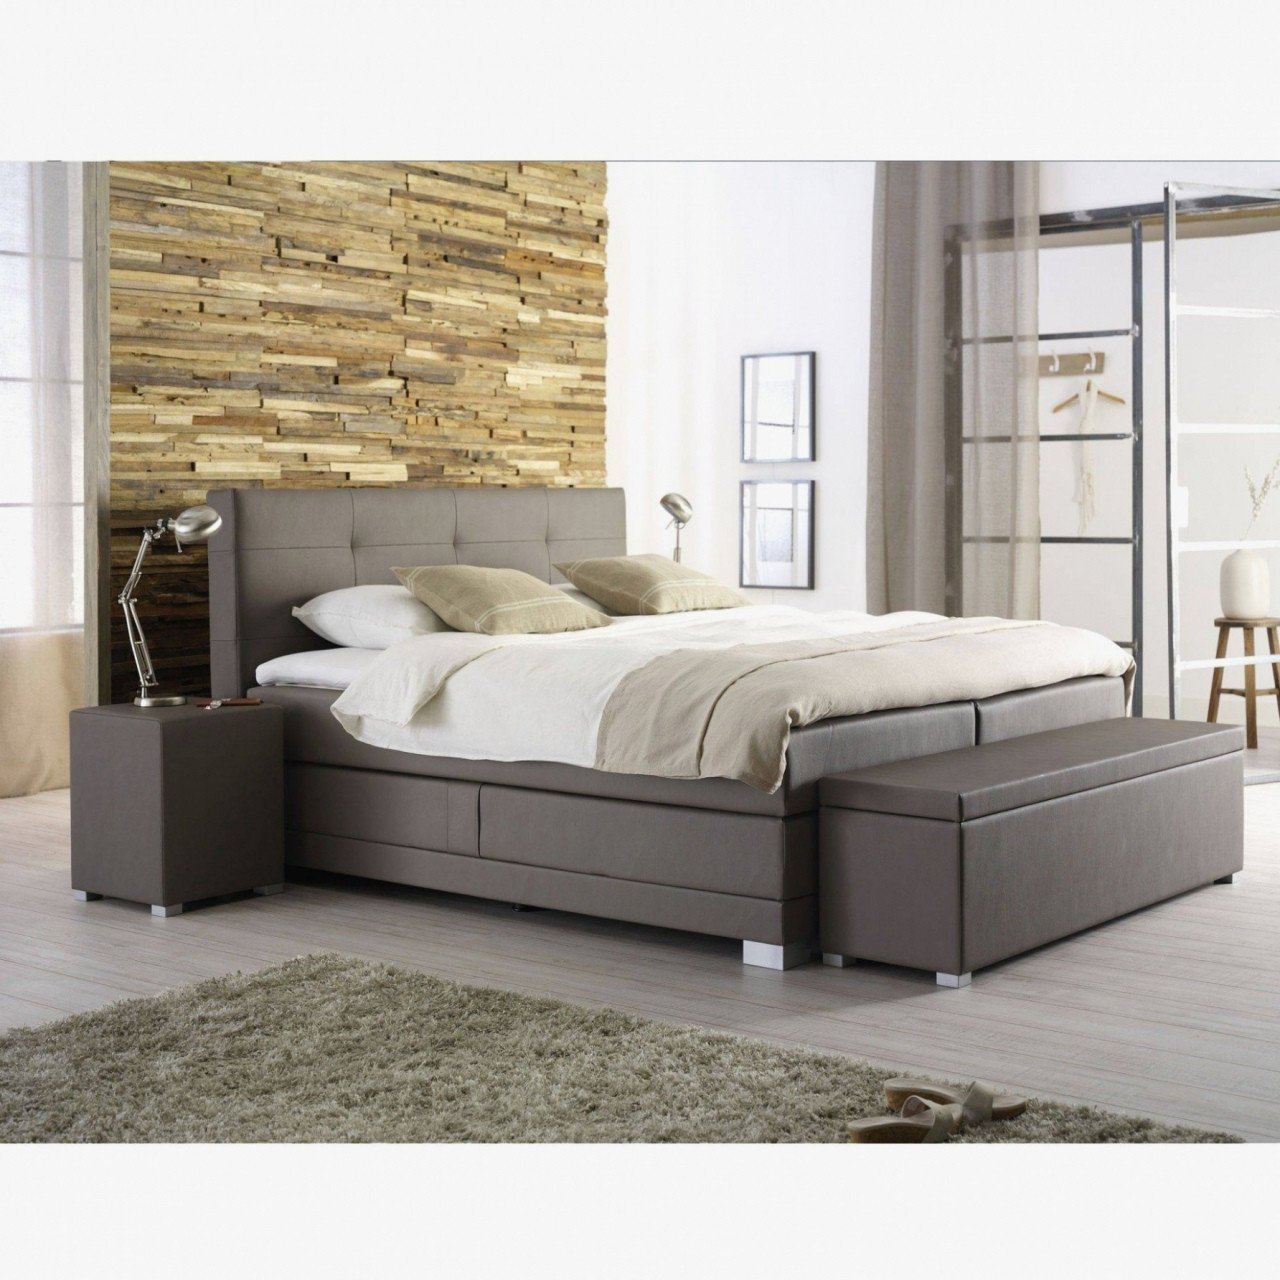 Complete Queen Bedroom Set New Bed with Drawers Under — Procura Home Blog